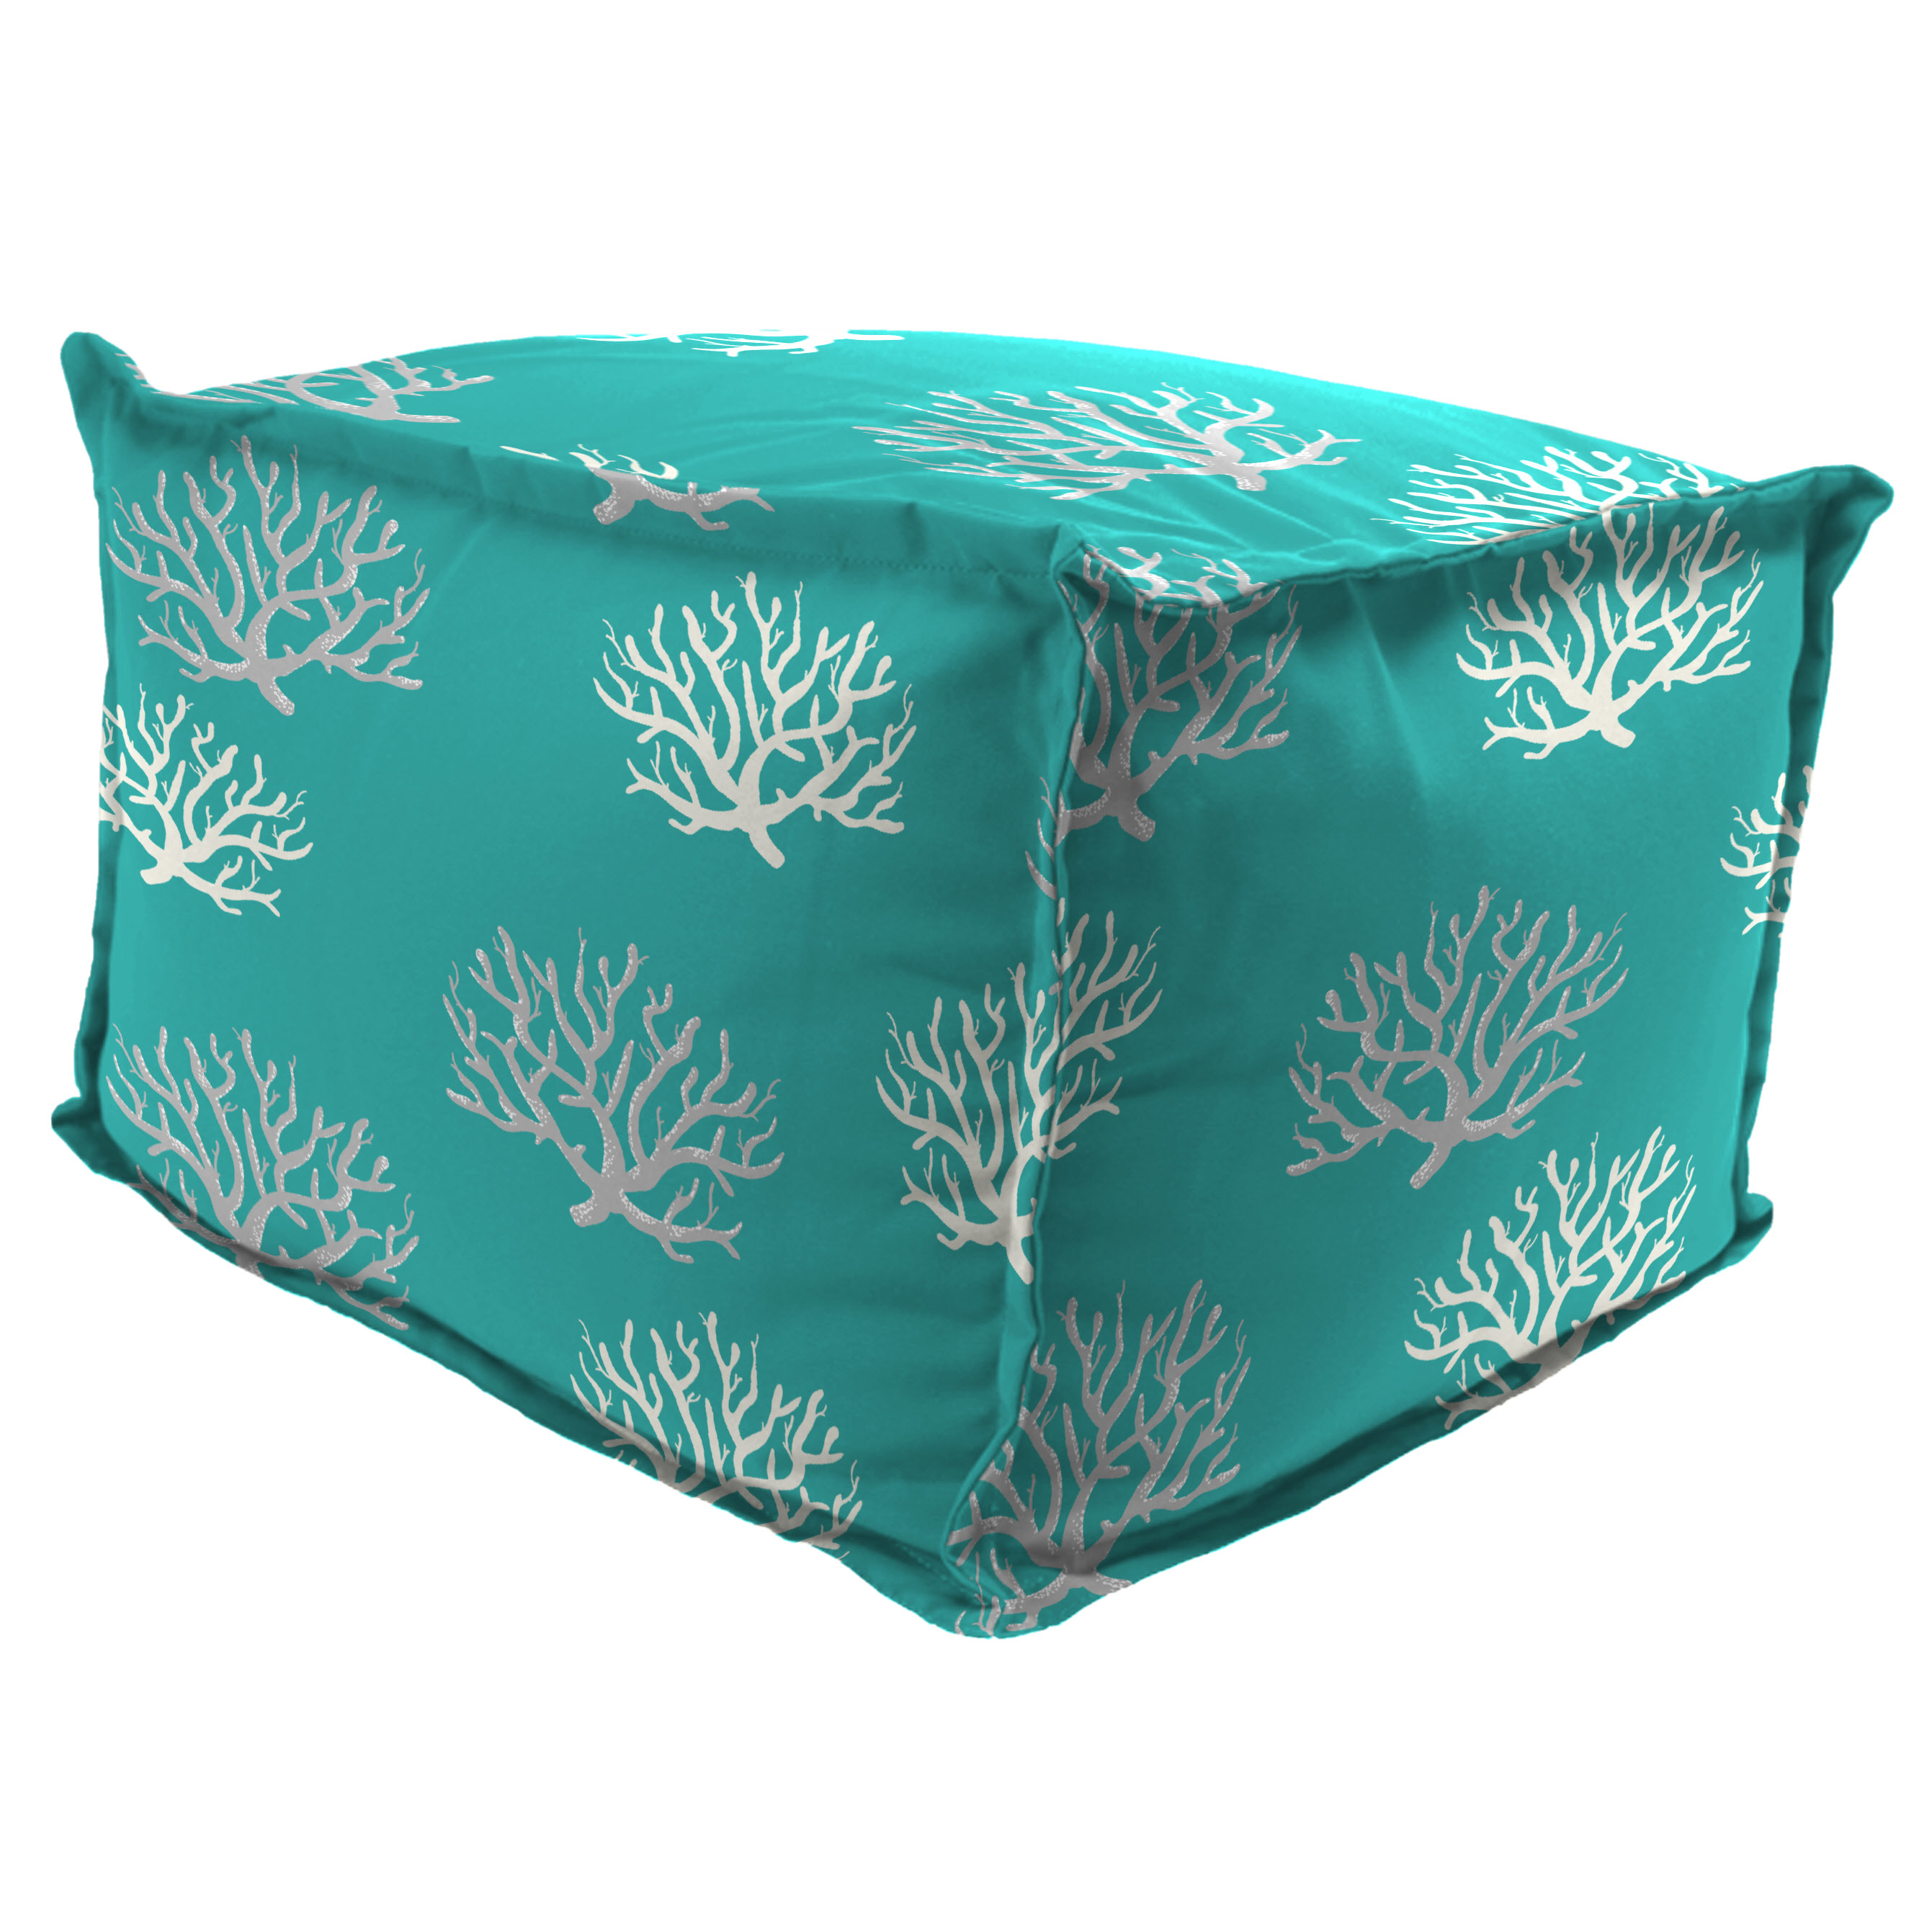 """Jordan Manufacturing Outdoor 20"""" x 20"""" Flanged Pouf/Ottoman, Bead Filled, Isadella Ocean"""